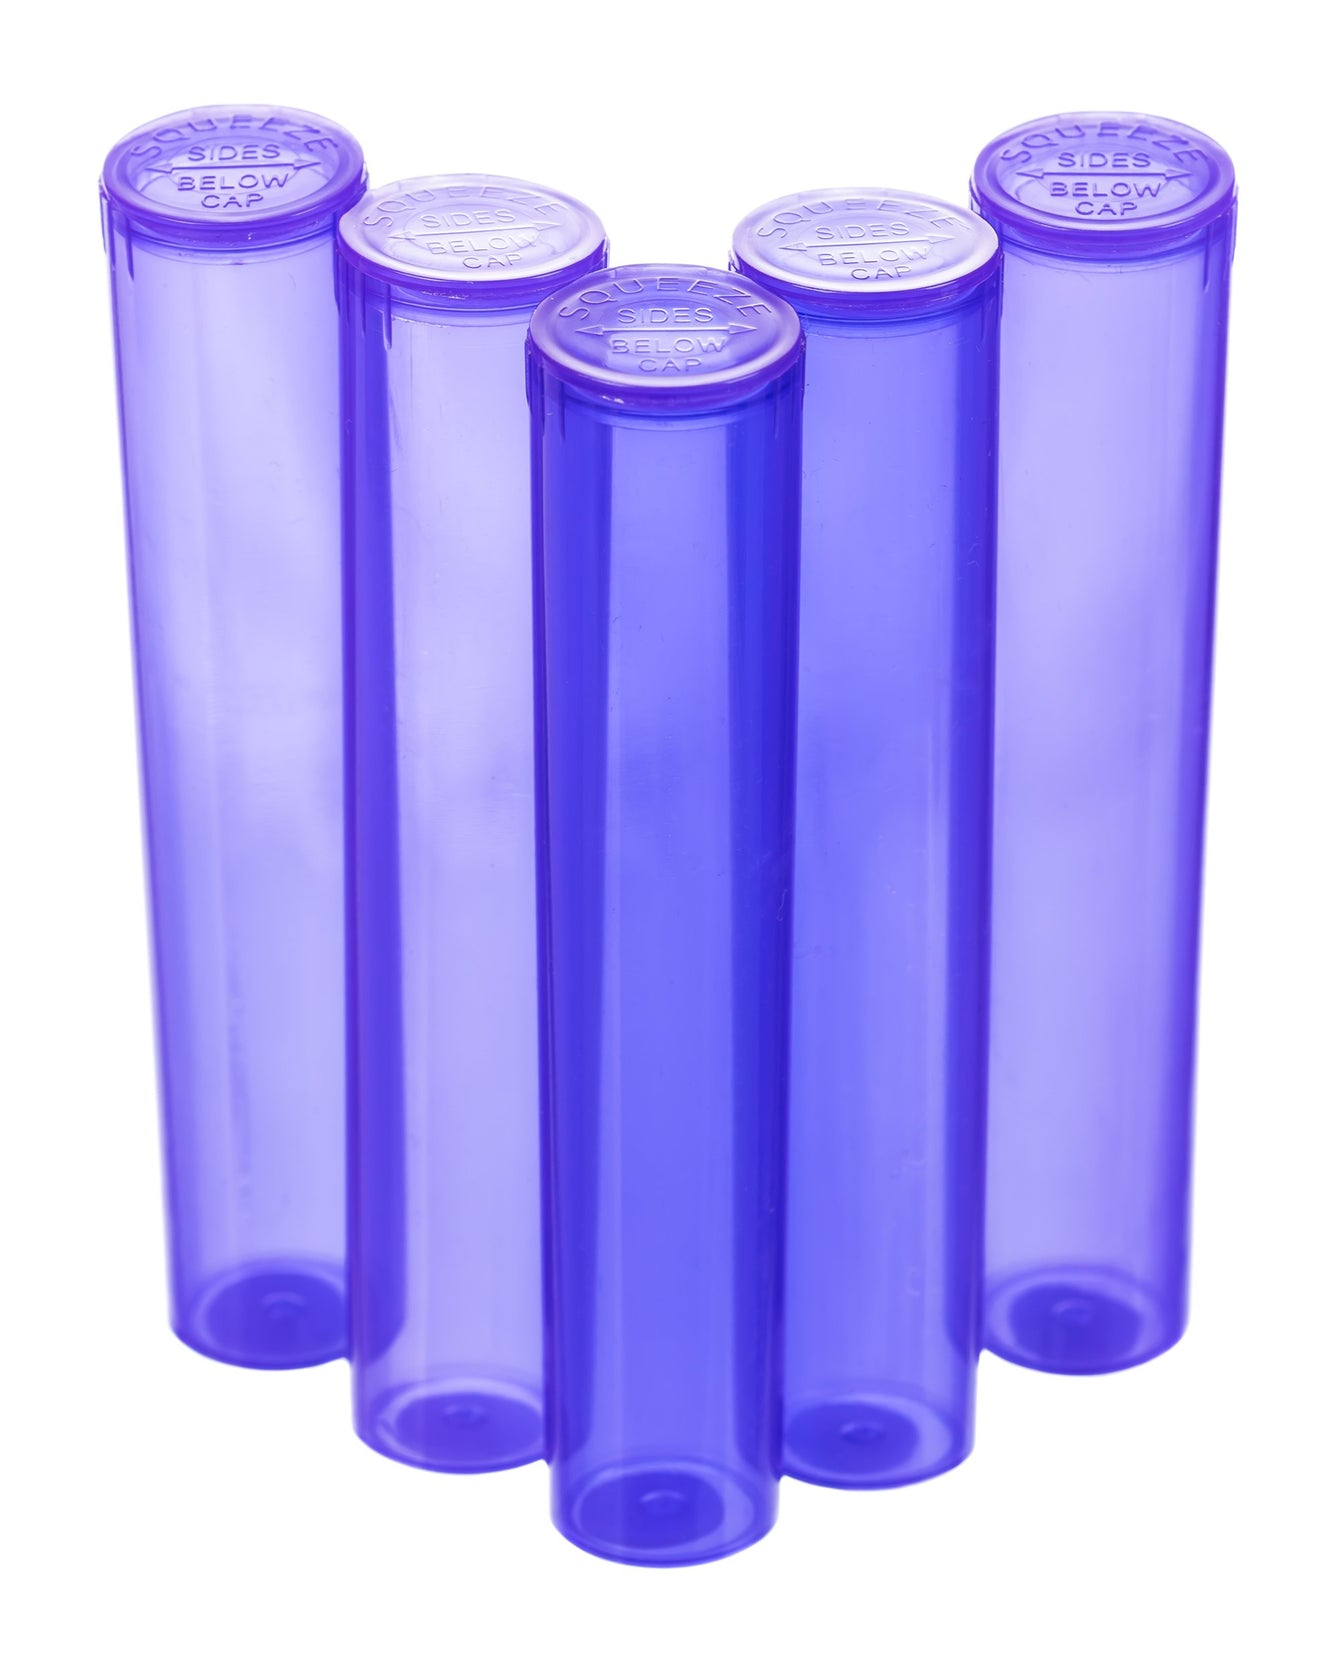 98mm pop top vials - 5 ct. Purple